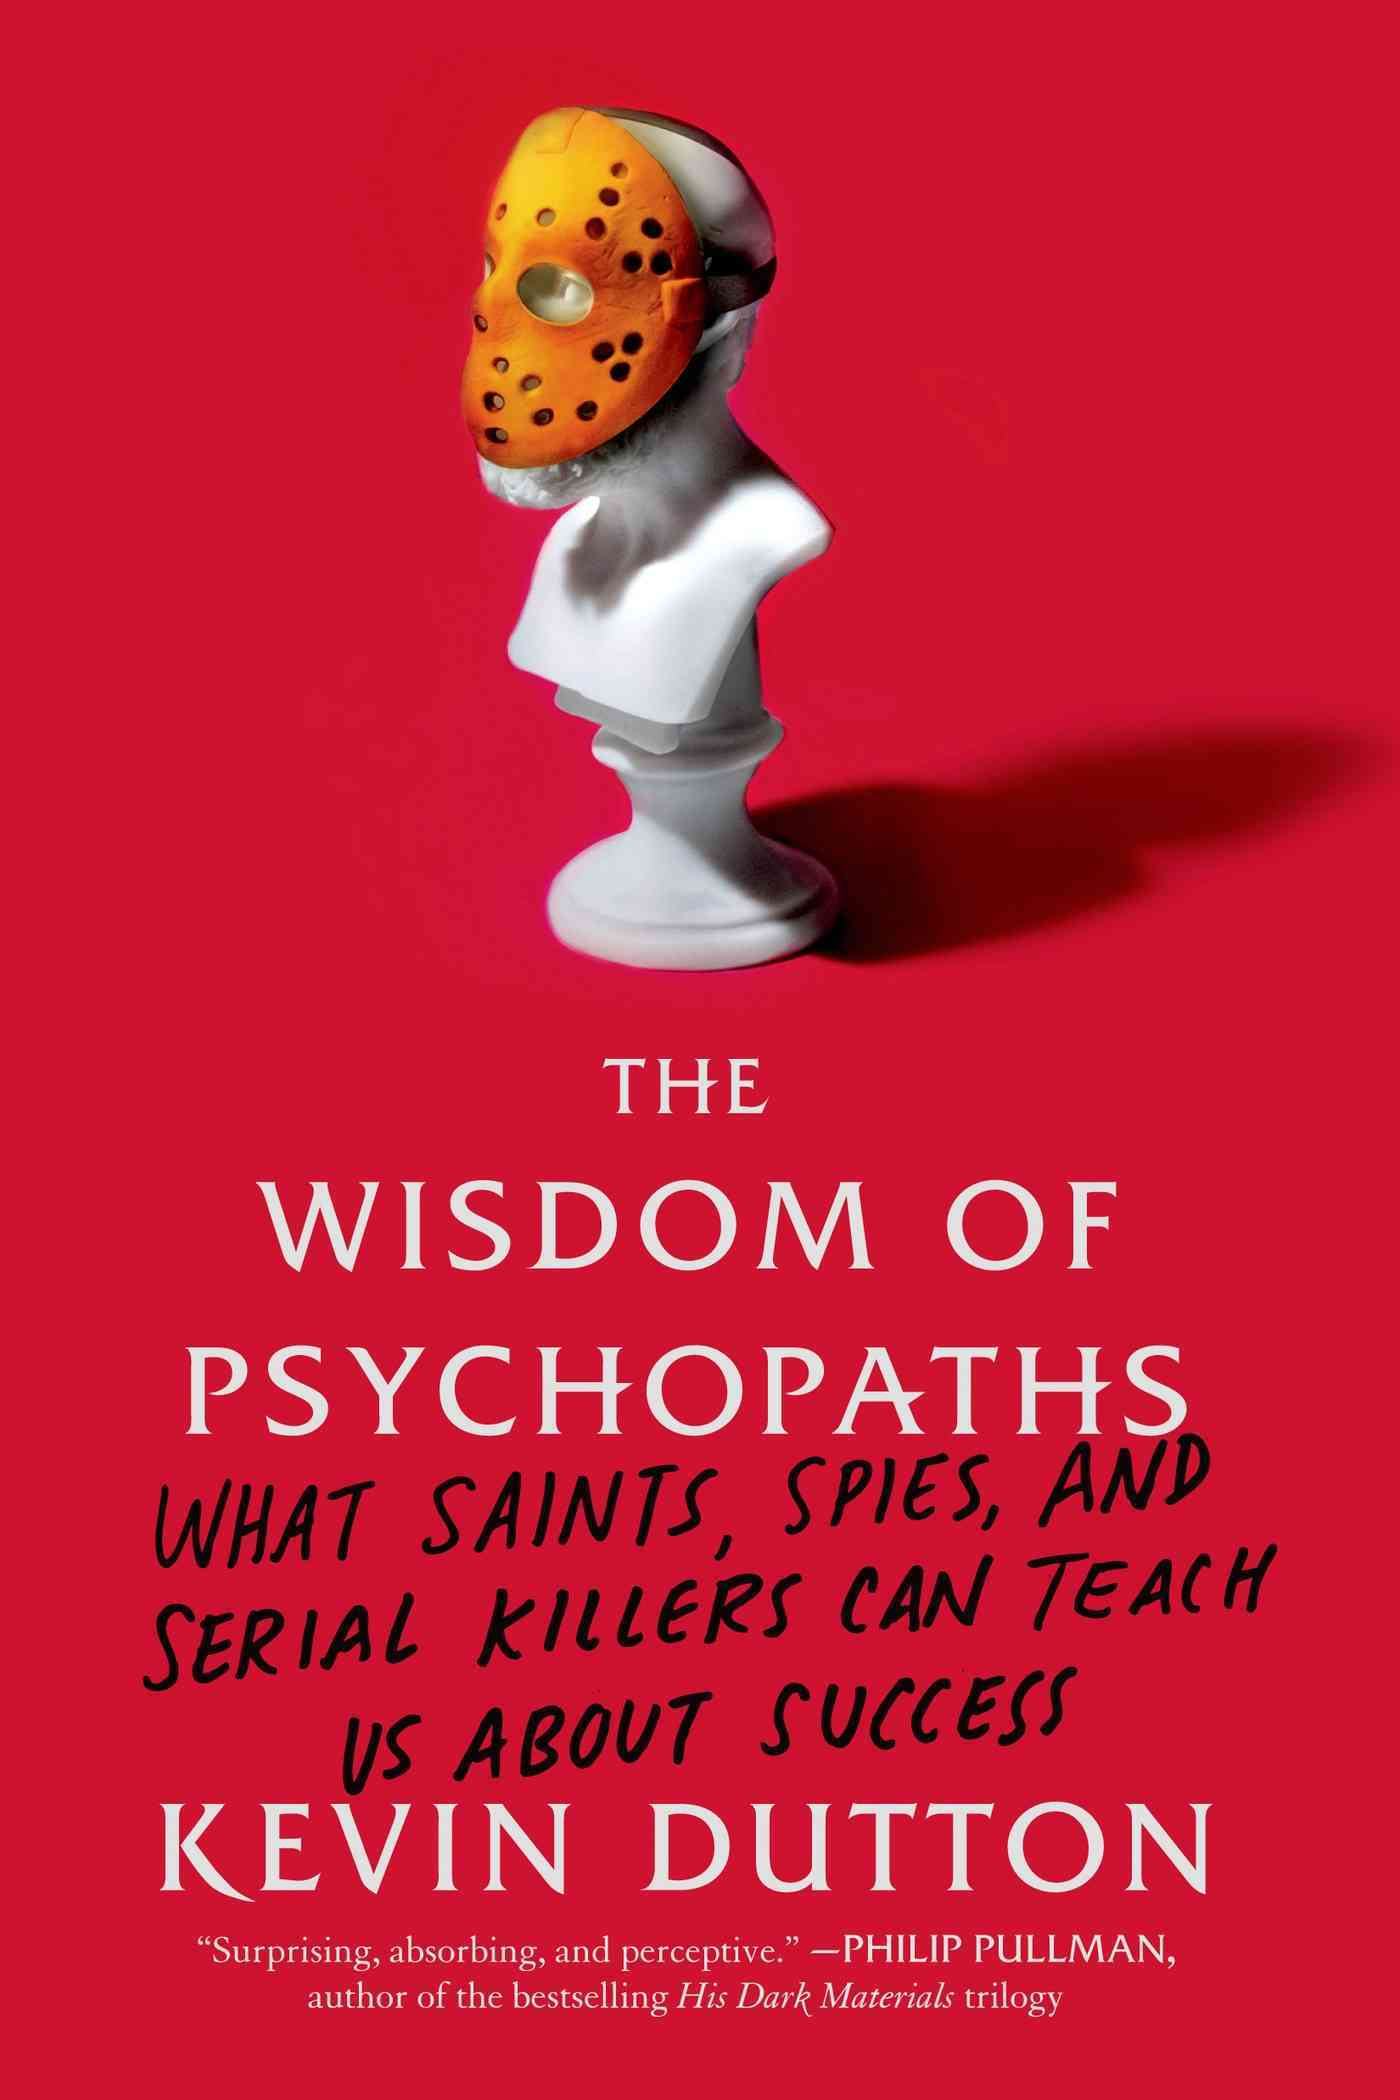 The Wisdom of Psychopaths: What Saints, Spies, and Serial Killers Can Teach Us About Success (Paperback)